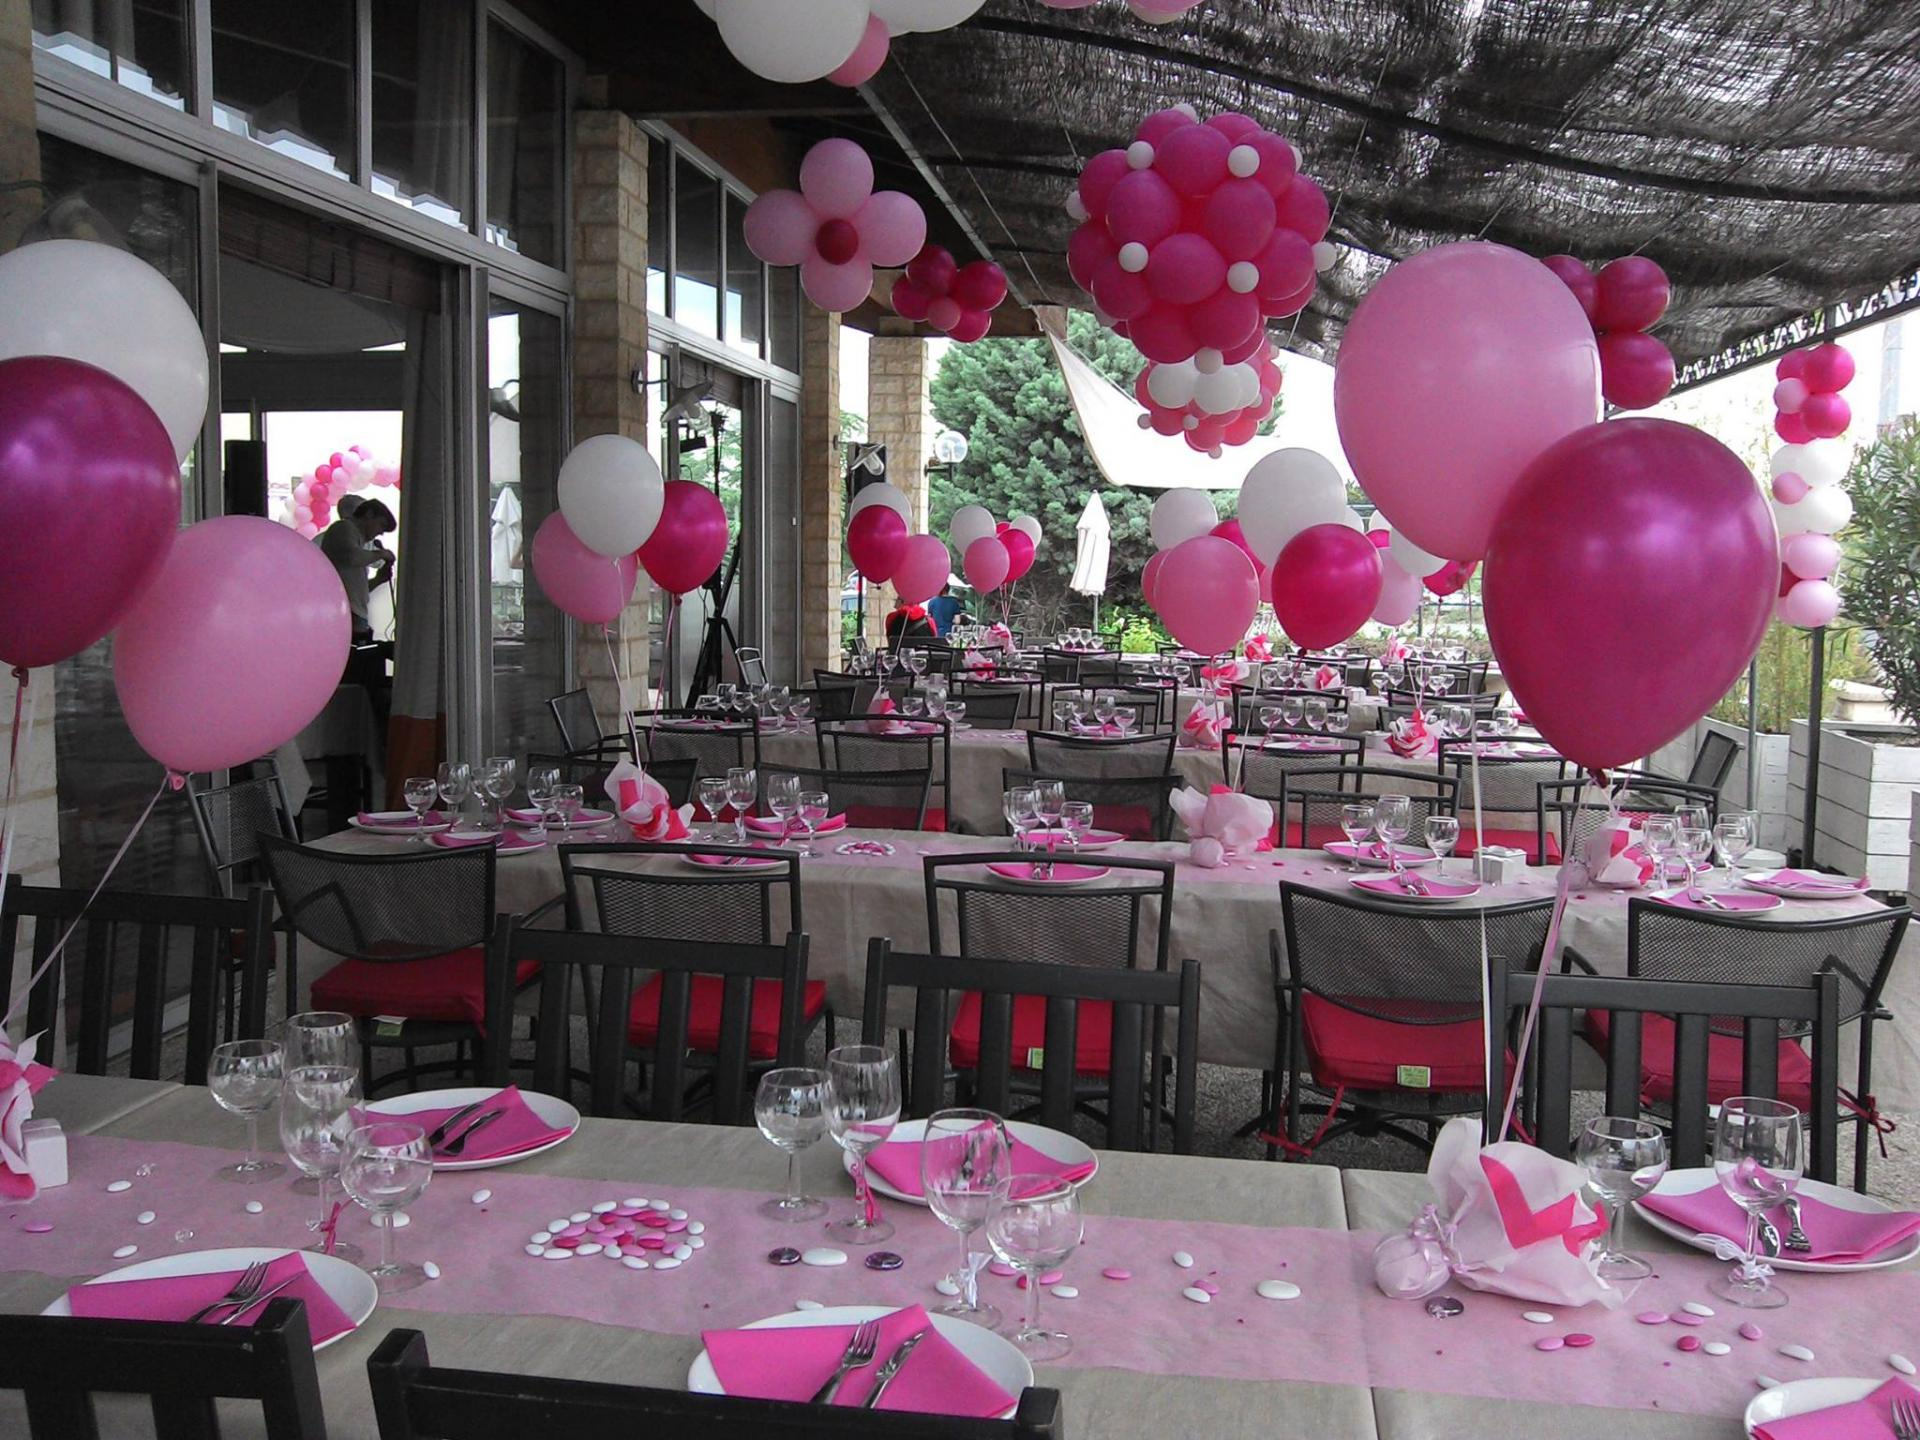 deco ballon mariage toulouse id es et d 39 inspiration sur le mariage. Black Bedroom Furniture Sets. Home Design Ideas